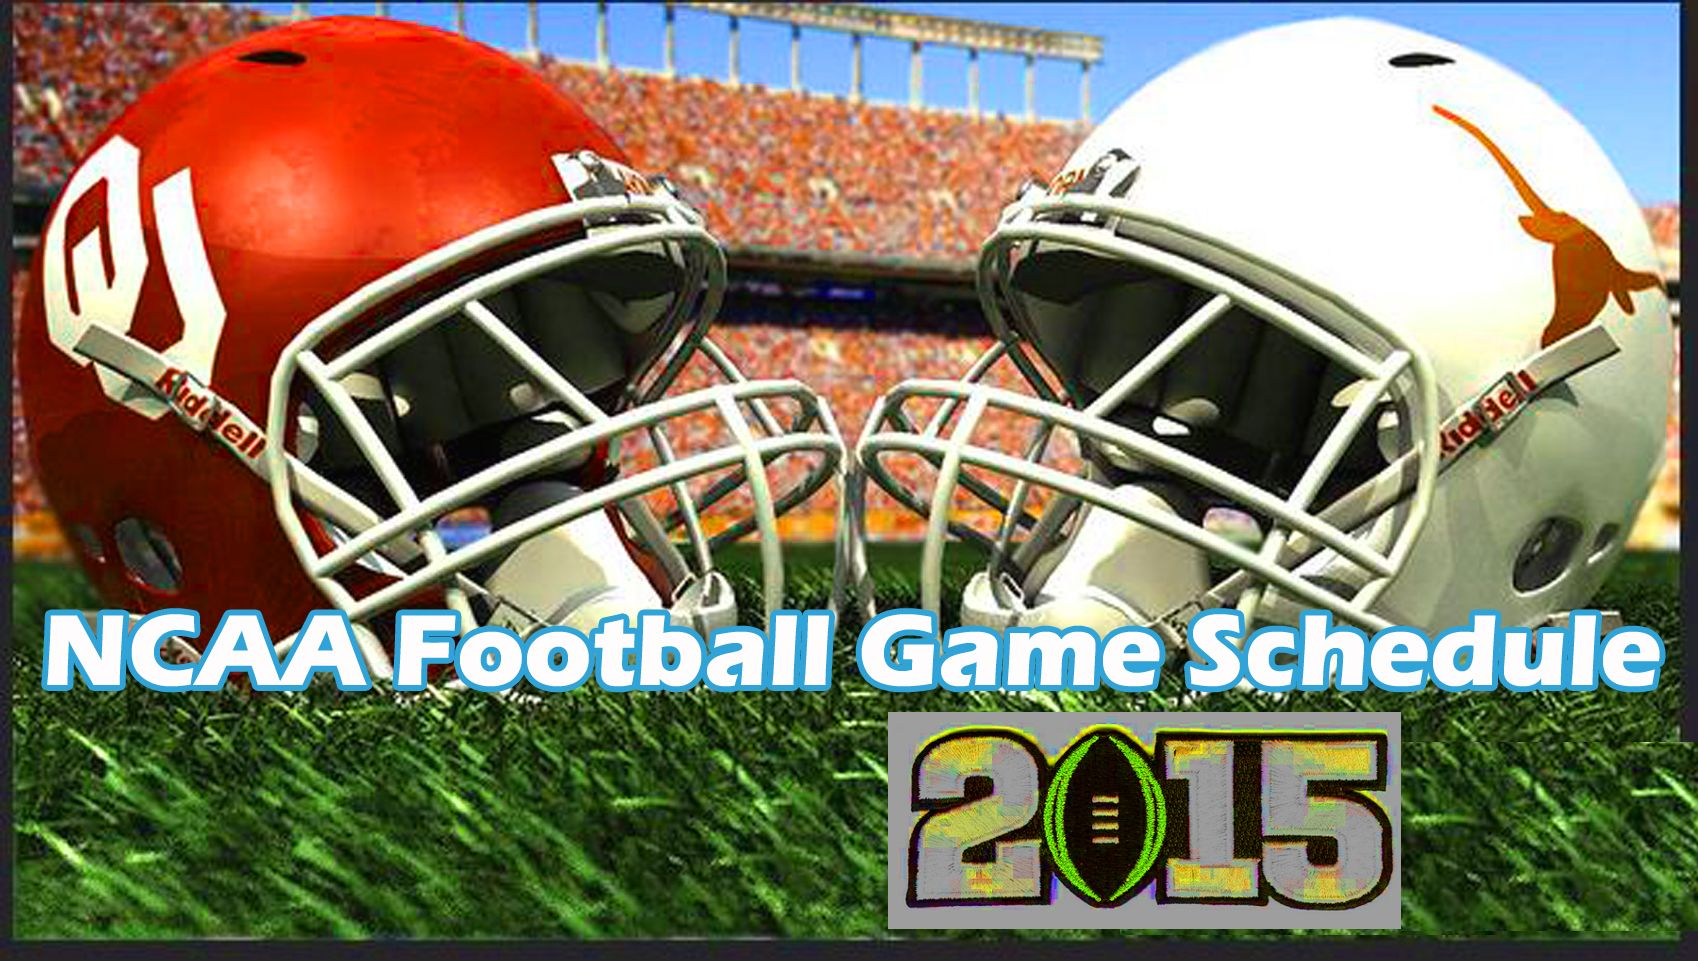 Ncaa football schedule 2015 seasons Ncaa football game